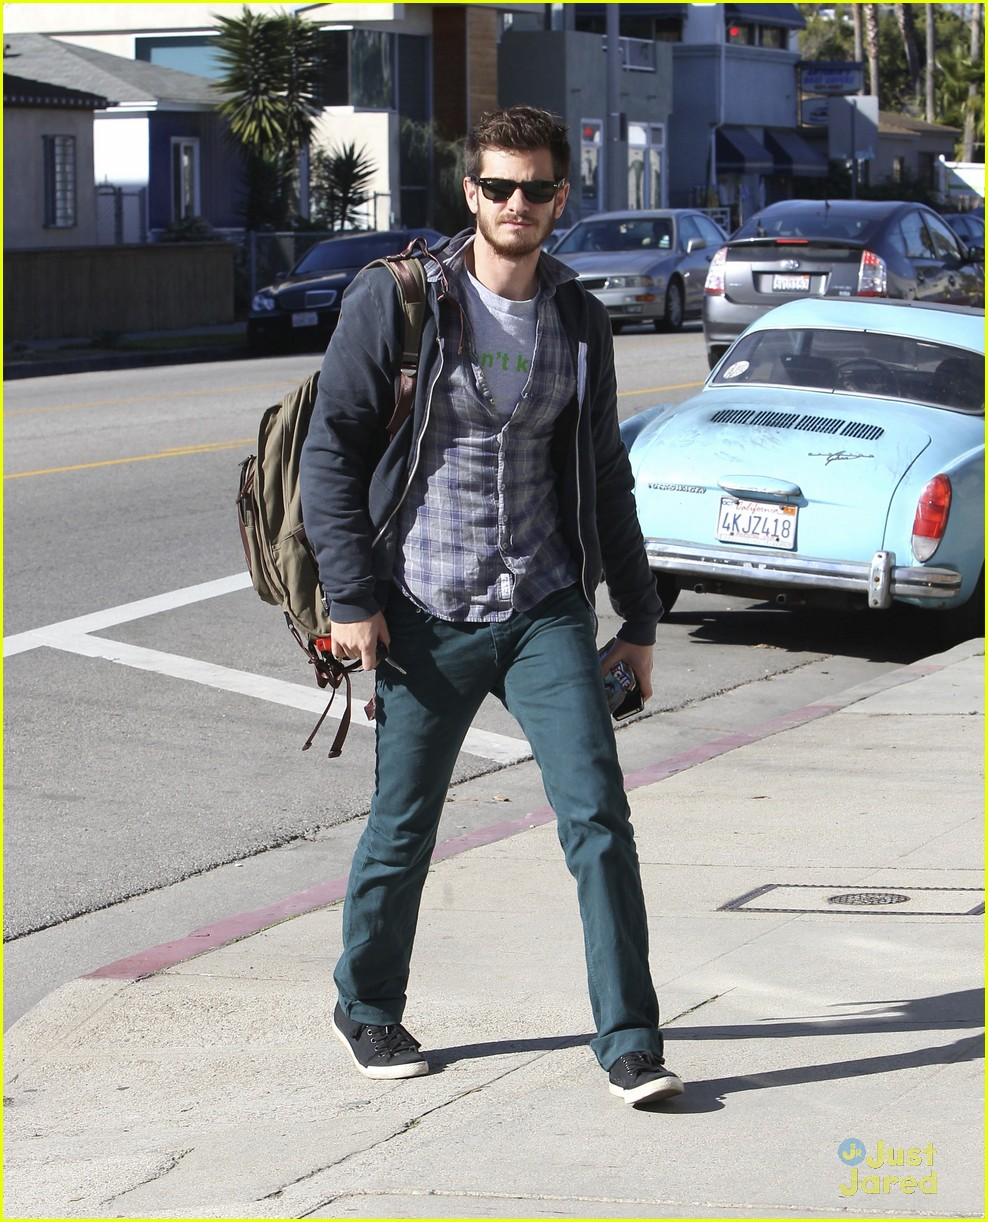 andrew garfield sunny saturday in venice beach 01